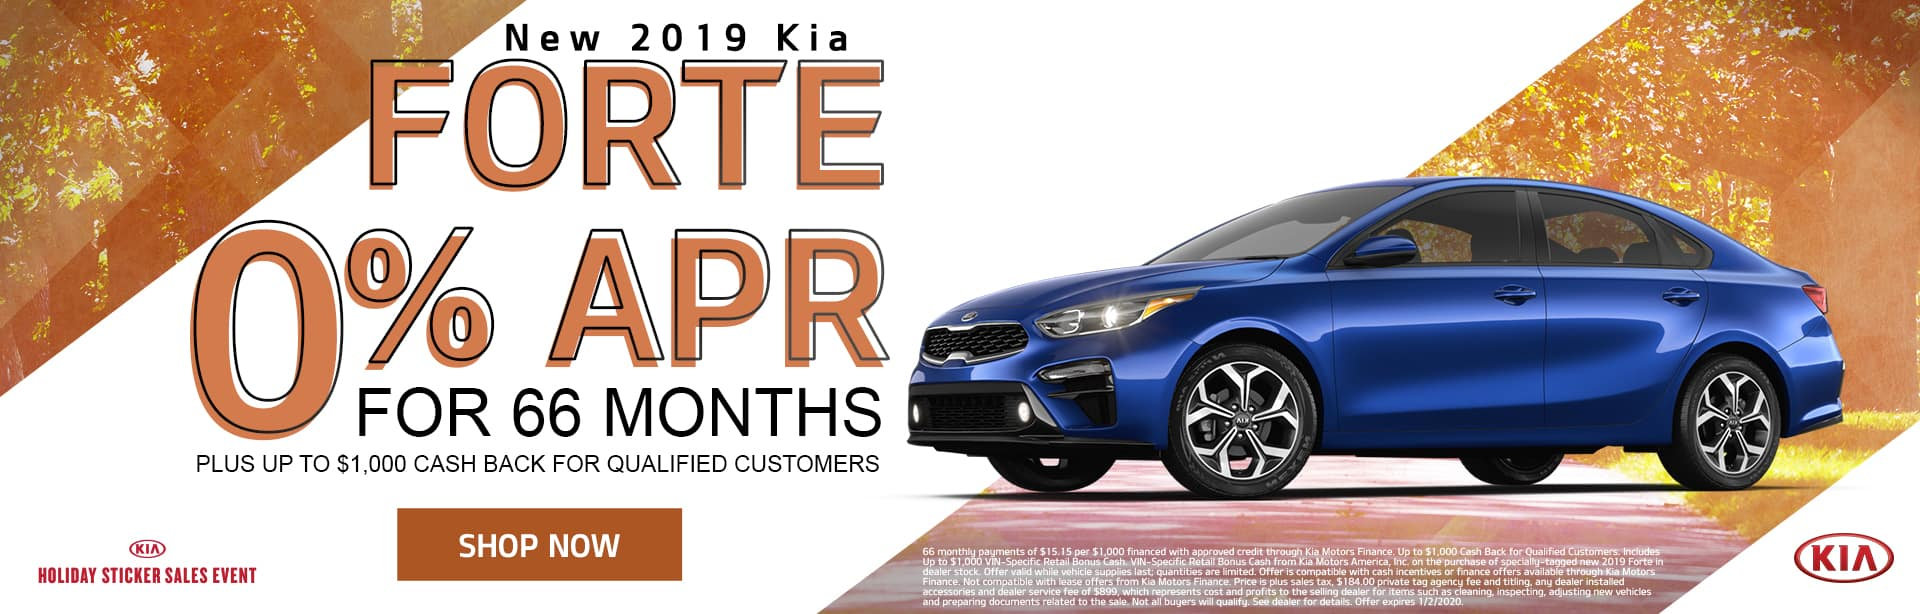 New 2019 Kia Forte | 0% APR For 66 Months Plus Up To $1,000 Cash Back For Qualified Customers